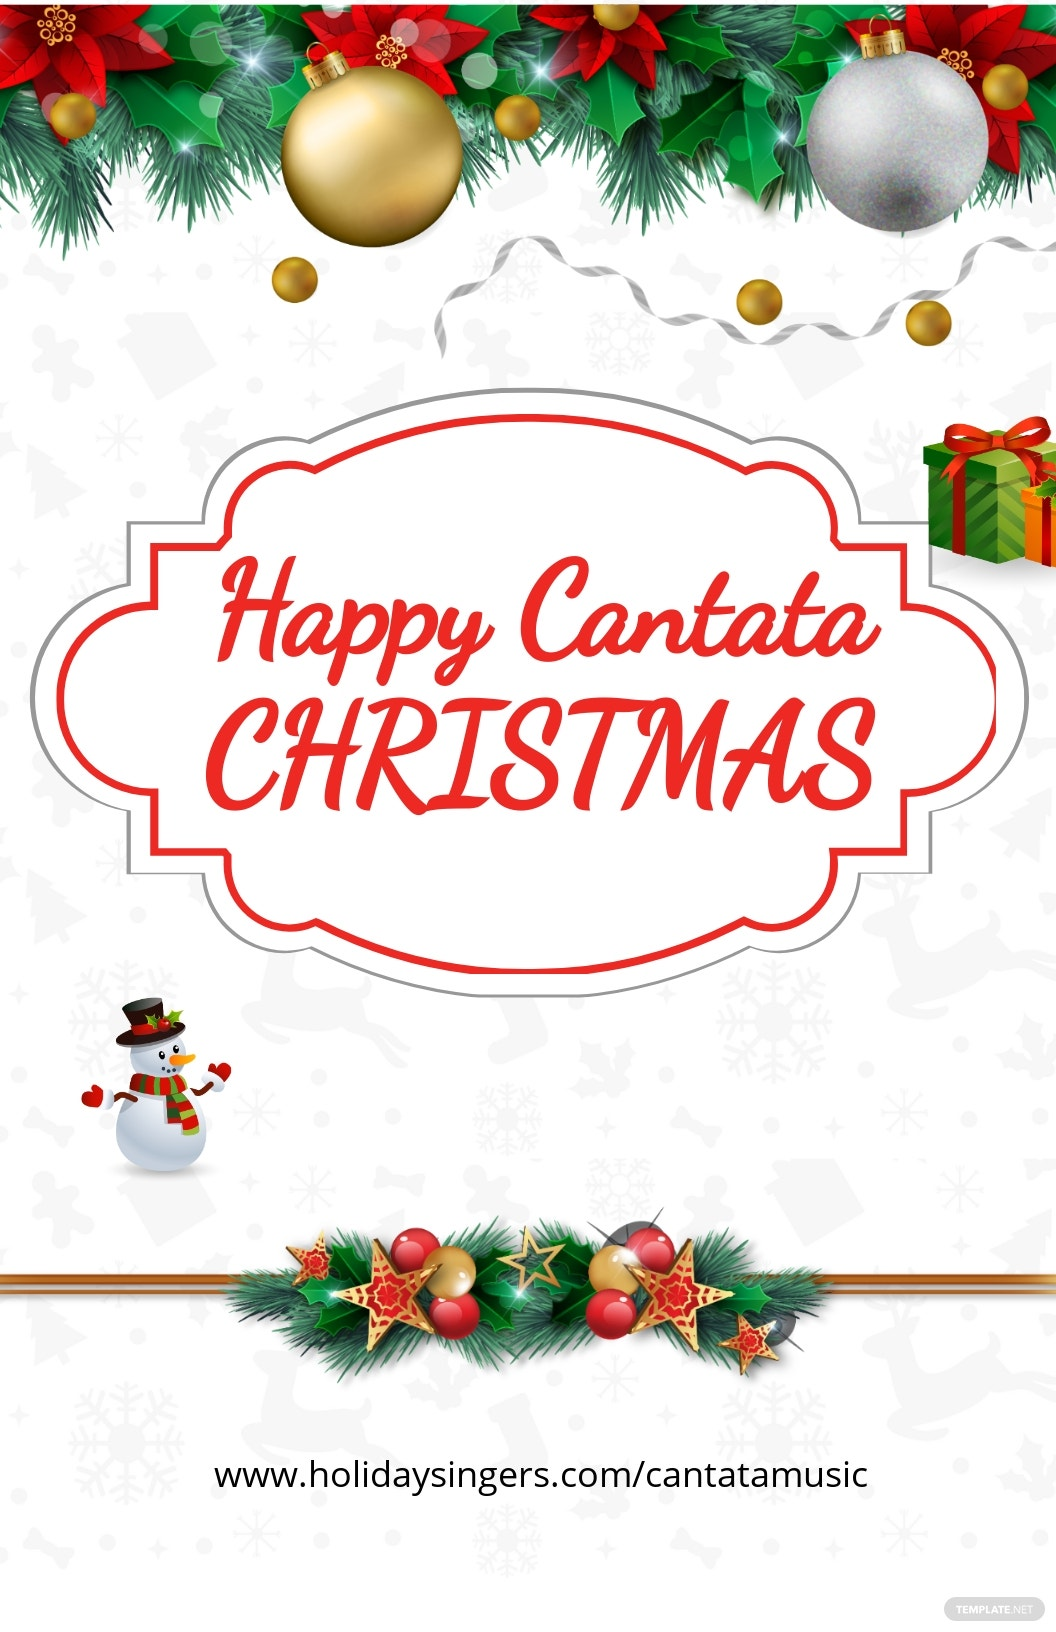 Cantata Christmas Poster Template